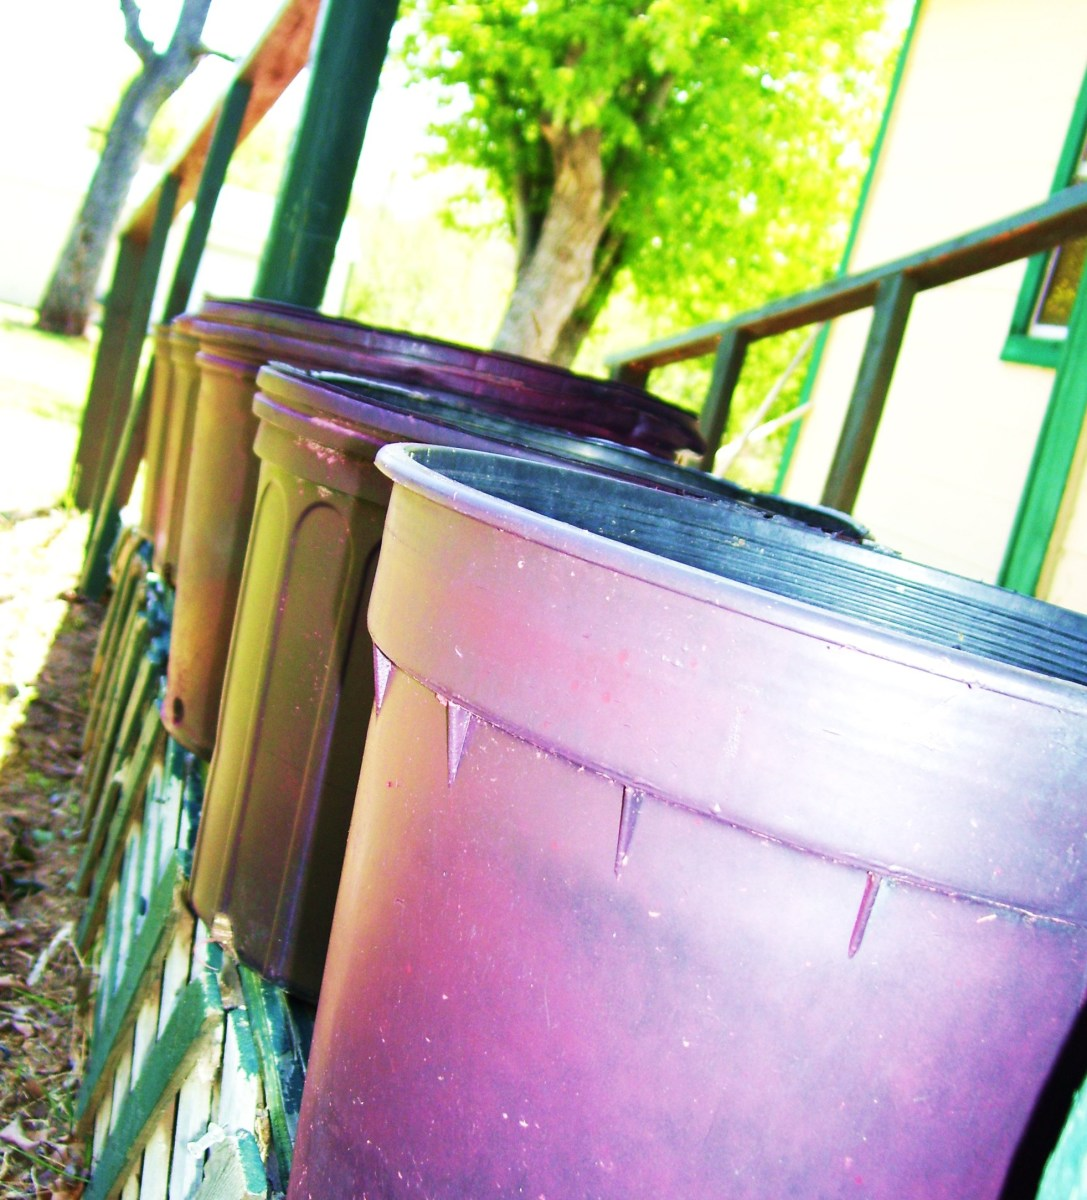 Pink pots all lined up and waiting for marigolds.